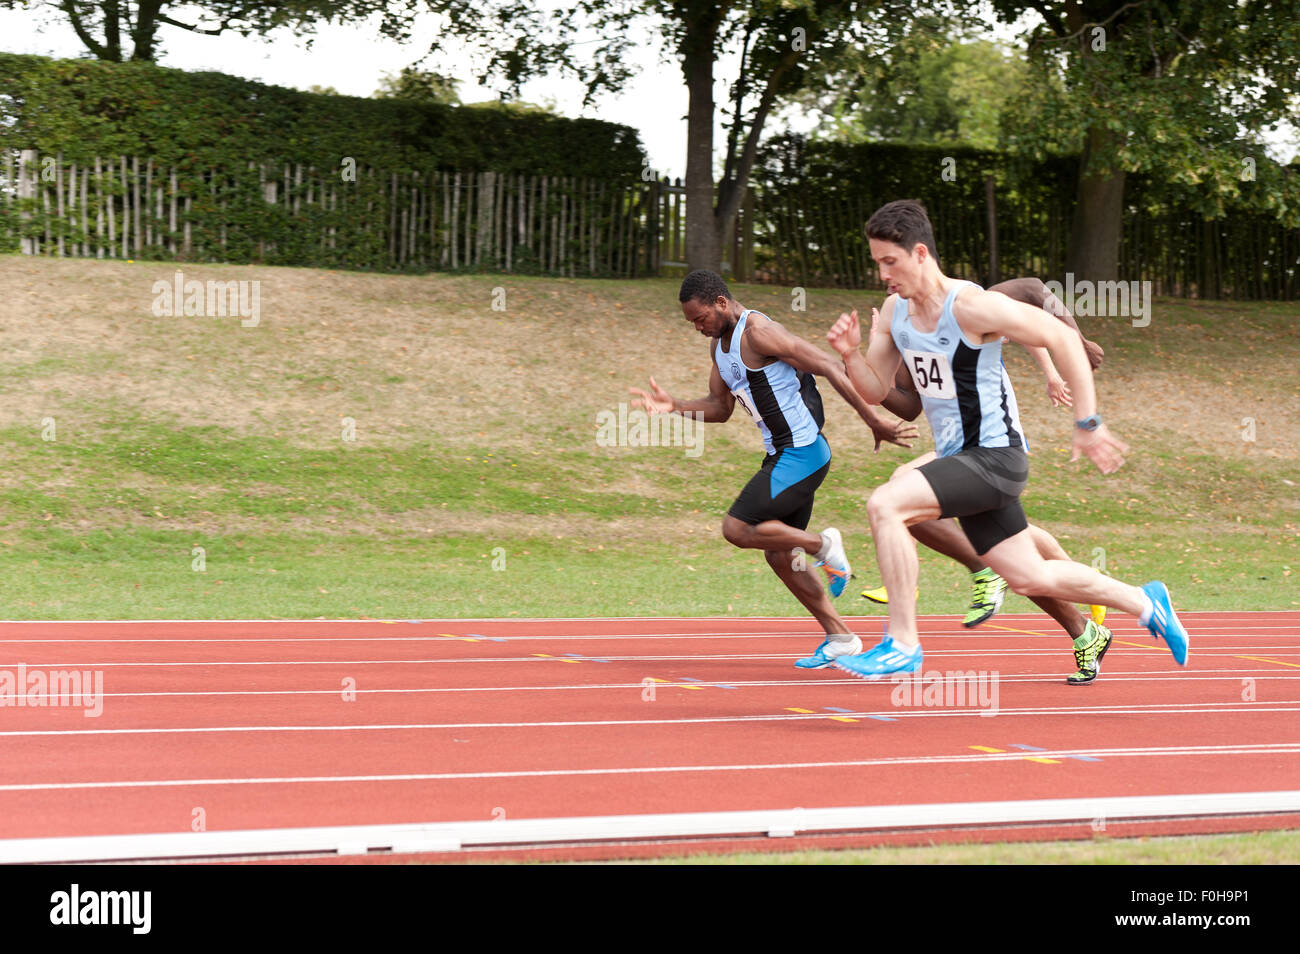 Sport for all 100m male sprint hundred meters race running at high speed athletes sprinters competing on track and - Stock Image